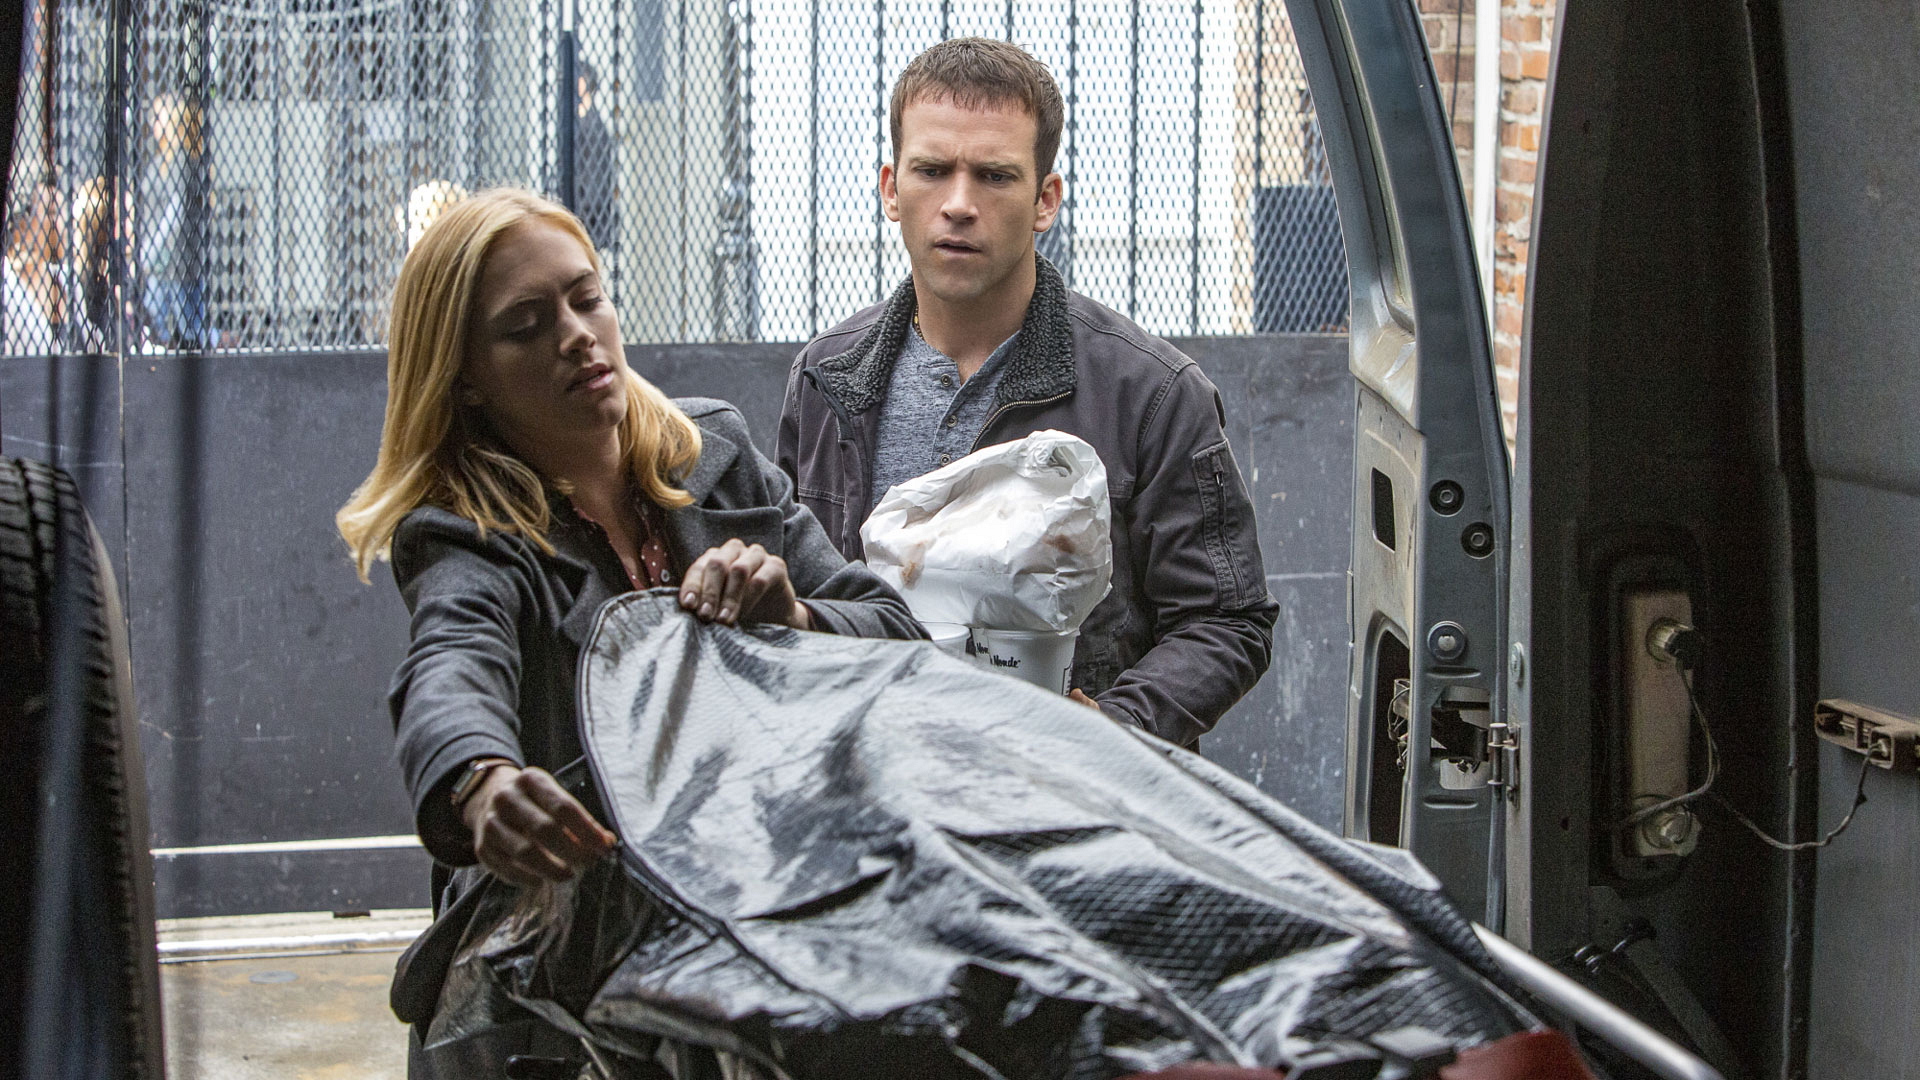 Emily Wickersham as Agent Ellie Bishop and Christopher LaSalle as Lucas Black